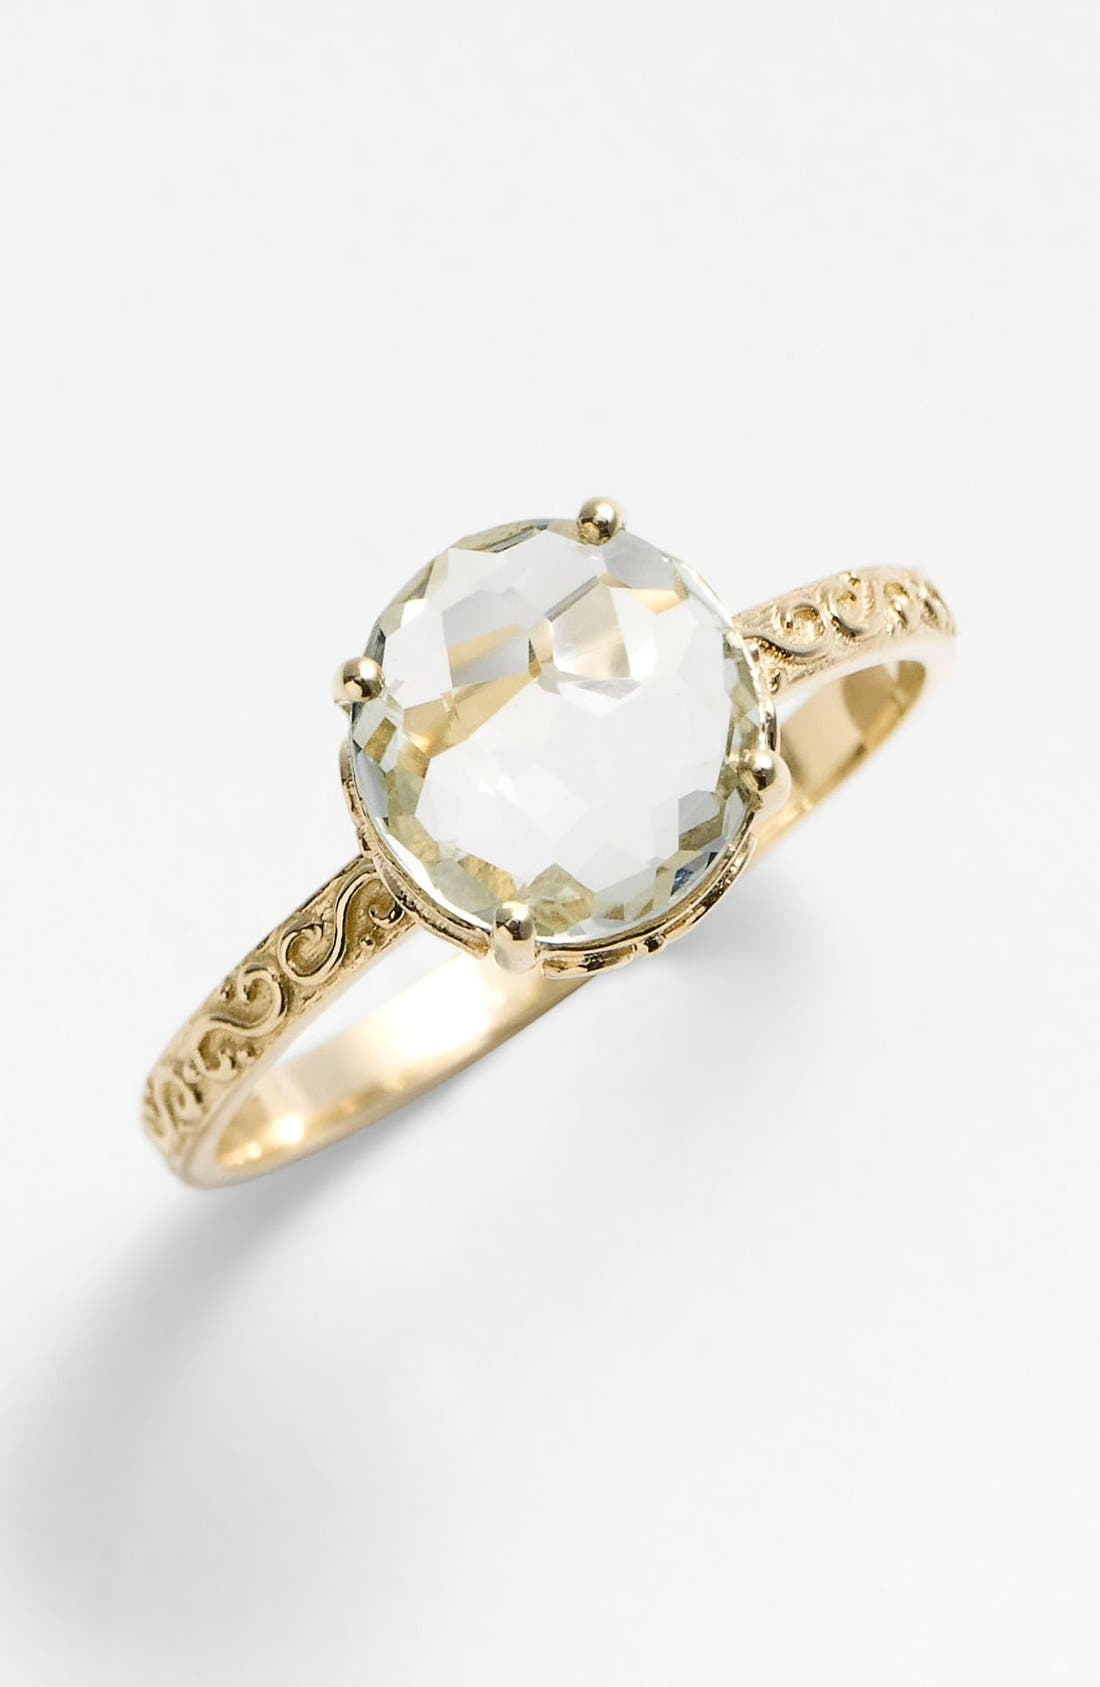 Alternate Image 1 Selected - KALAN by Suzanne Kalan Round Stone Filigree Ring